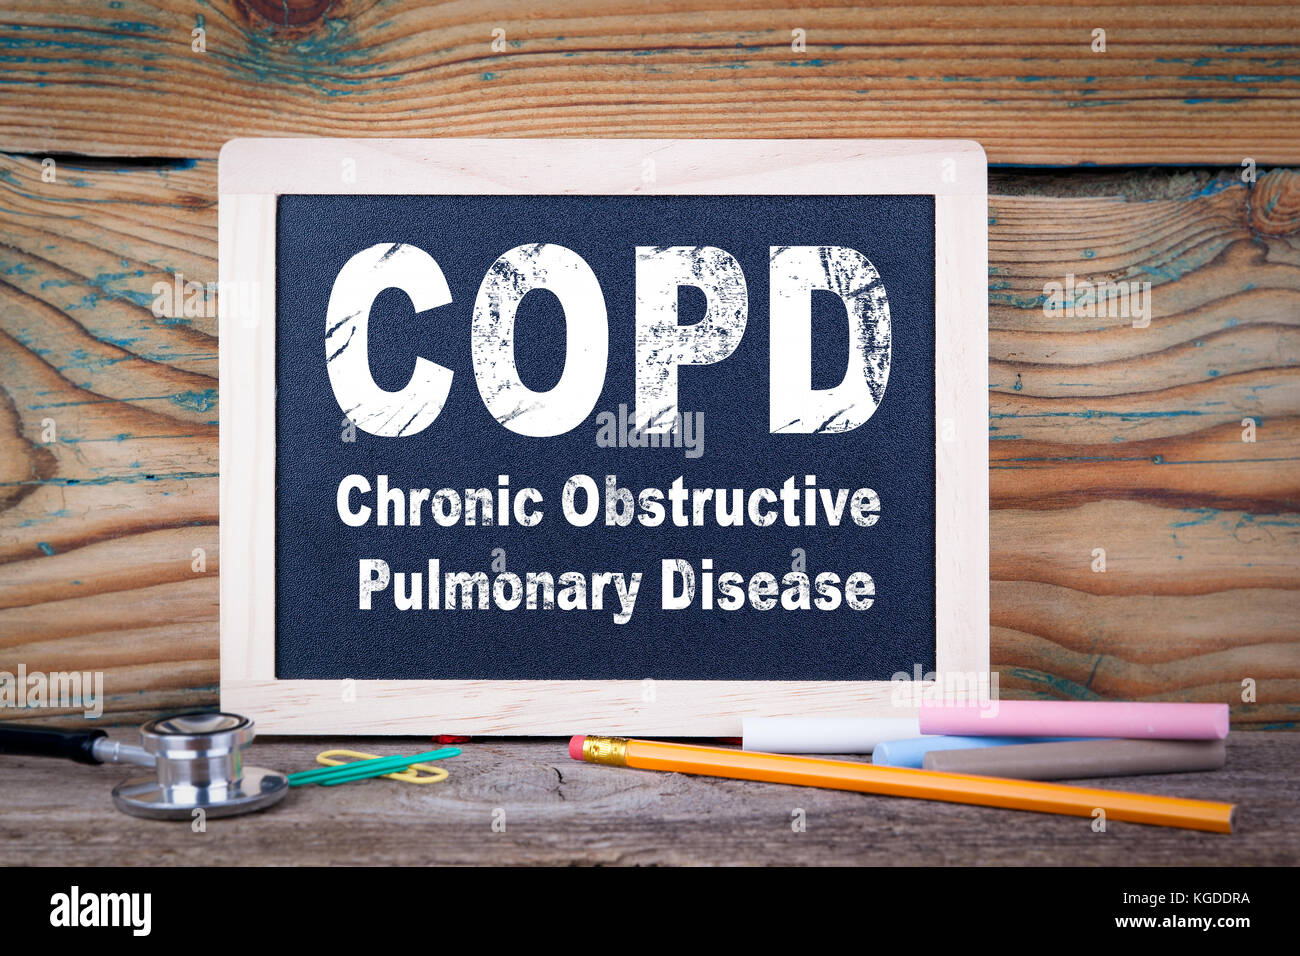 copd, Chronic obstructive pulmonary disease. Chalkboard on a wooden background - Stock Image